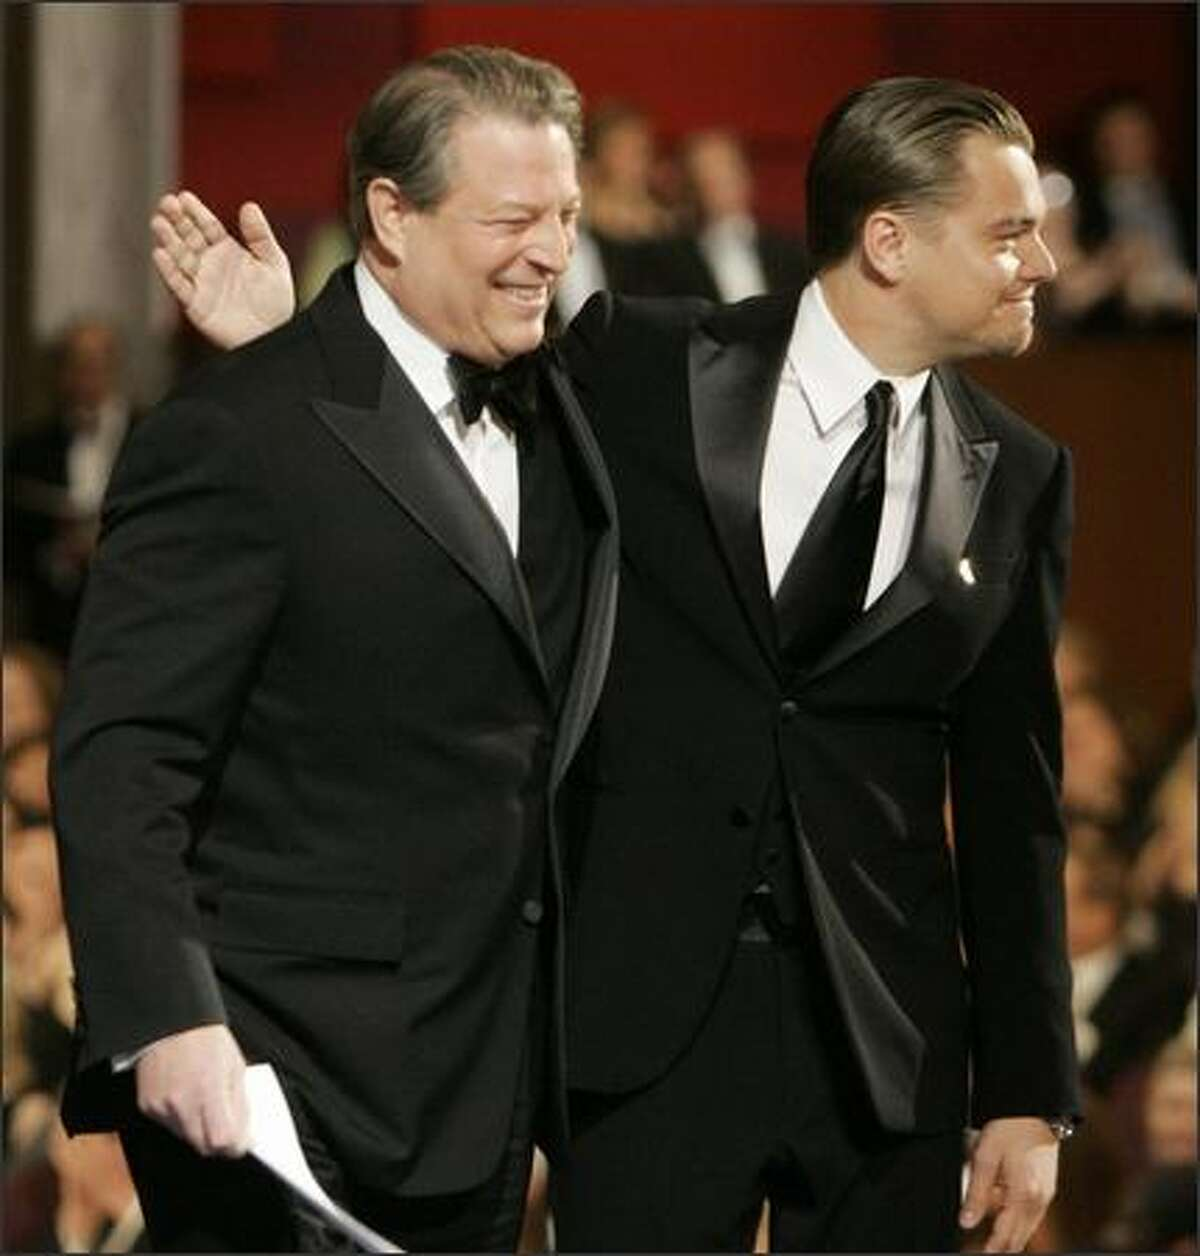 Former Vice President Al Gore, left, and Leonardo DiCaprio walk off stage during the 79th Academy Awards at the Kodak Theatre in Los Angeles Sunday. (AP Photo/Chris Carlson)